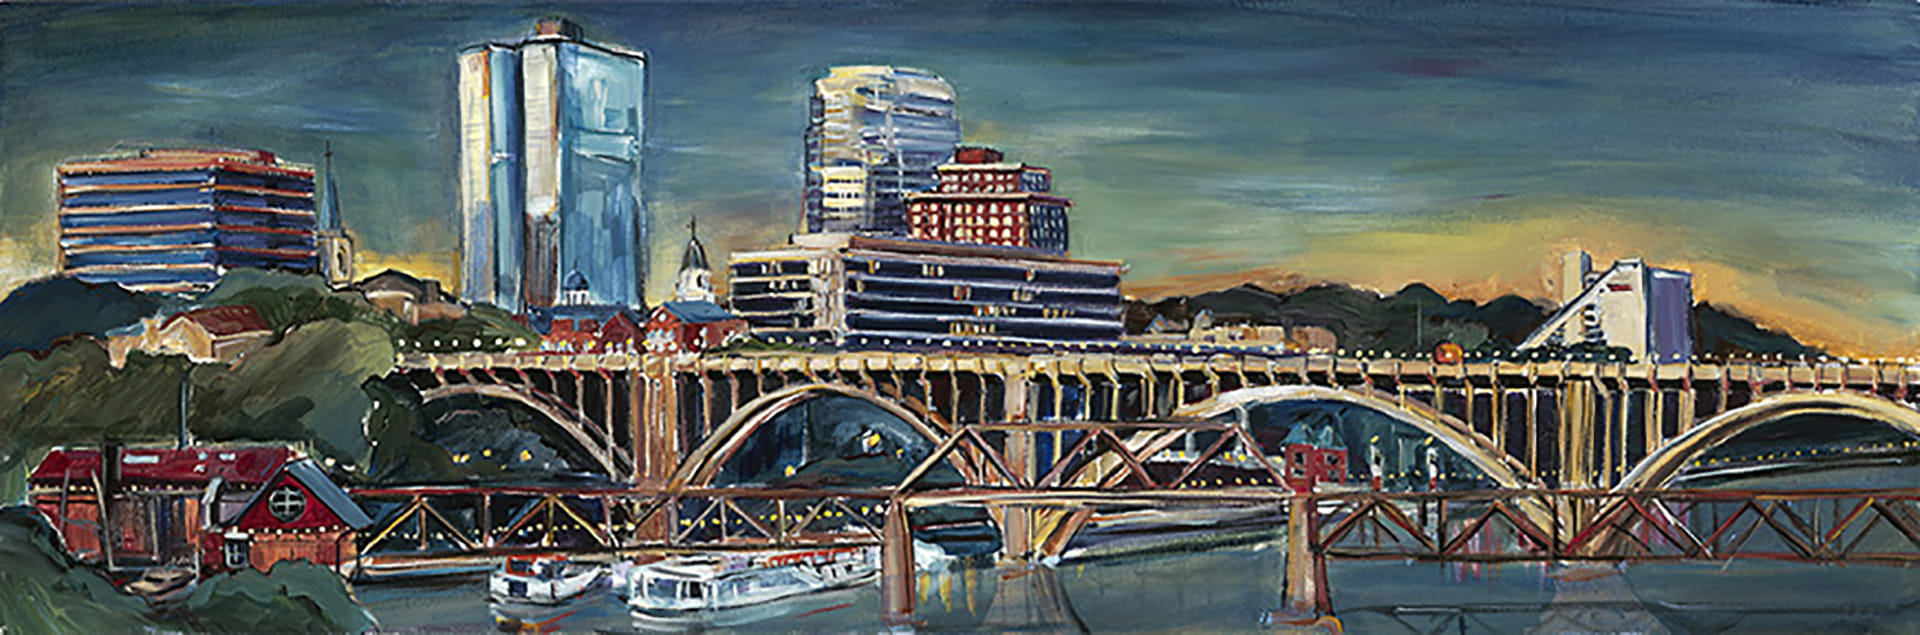 Knoxville River Escape Heather Whiteside 2015